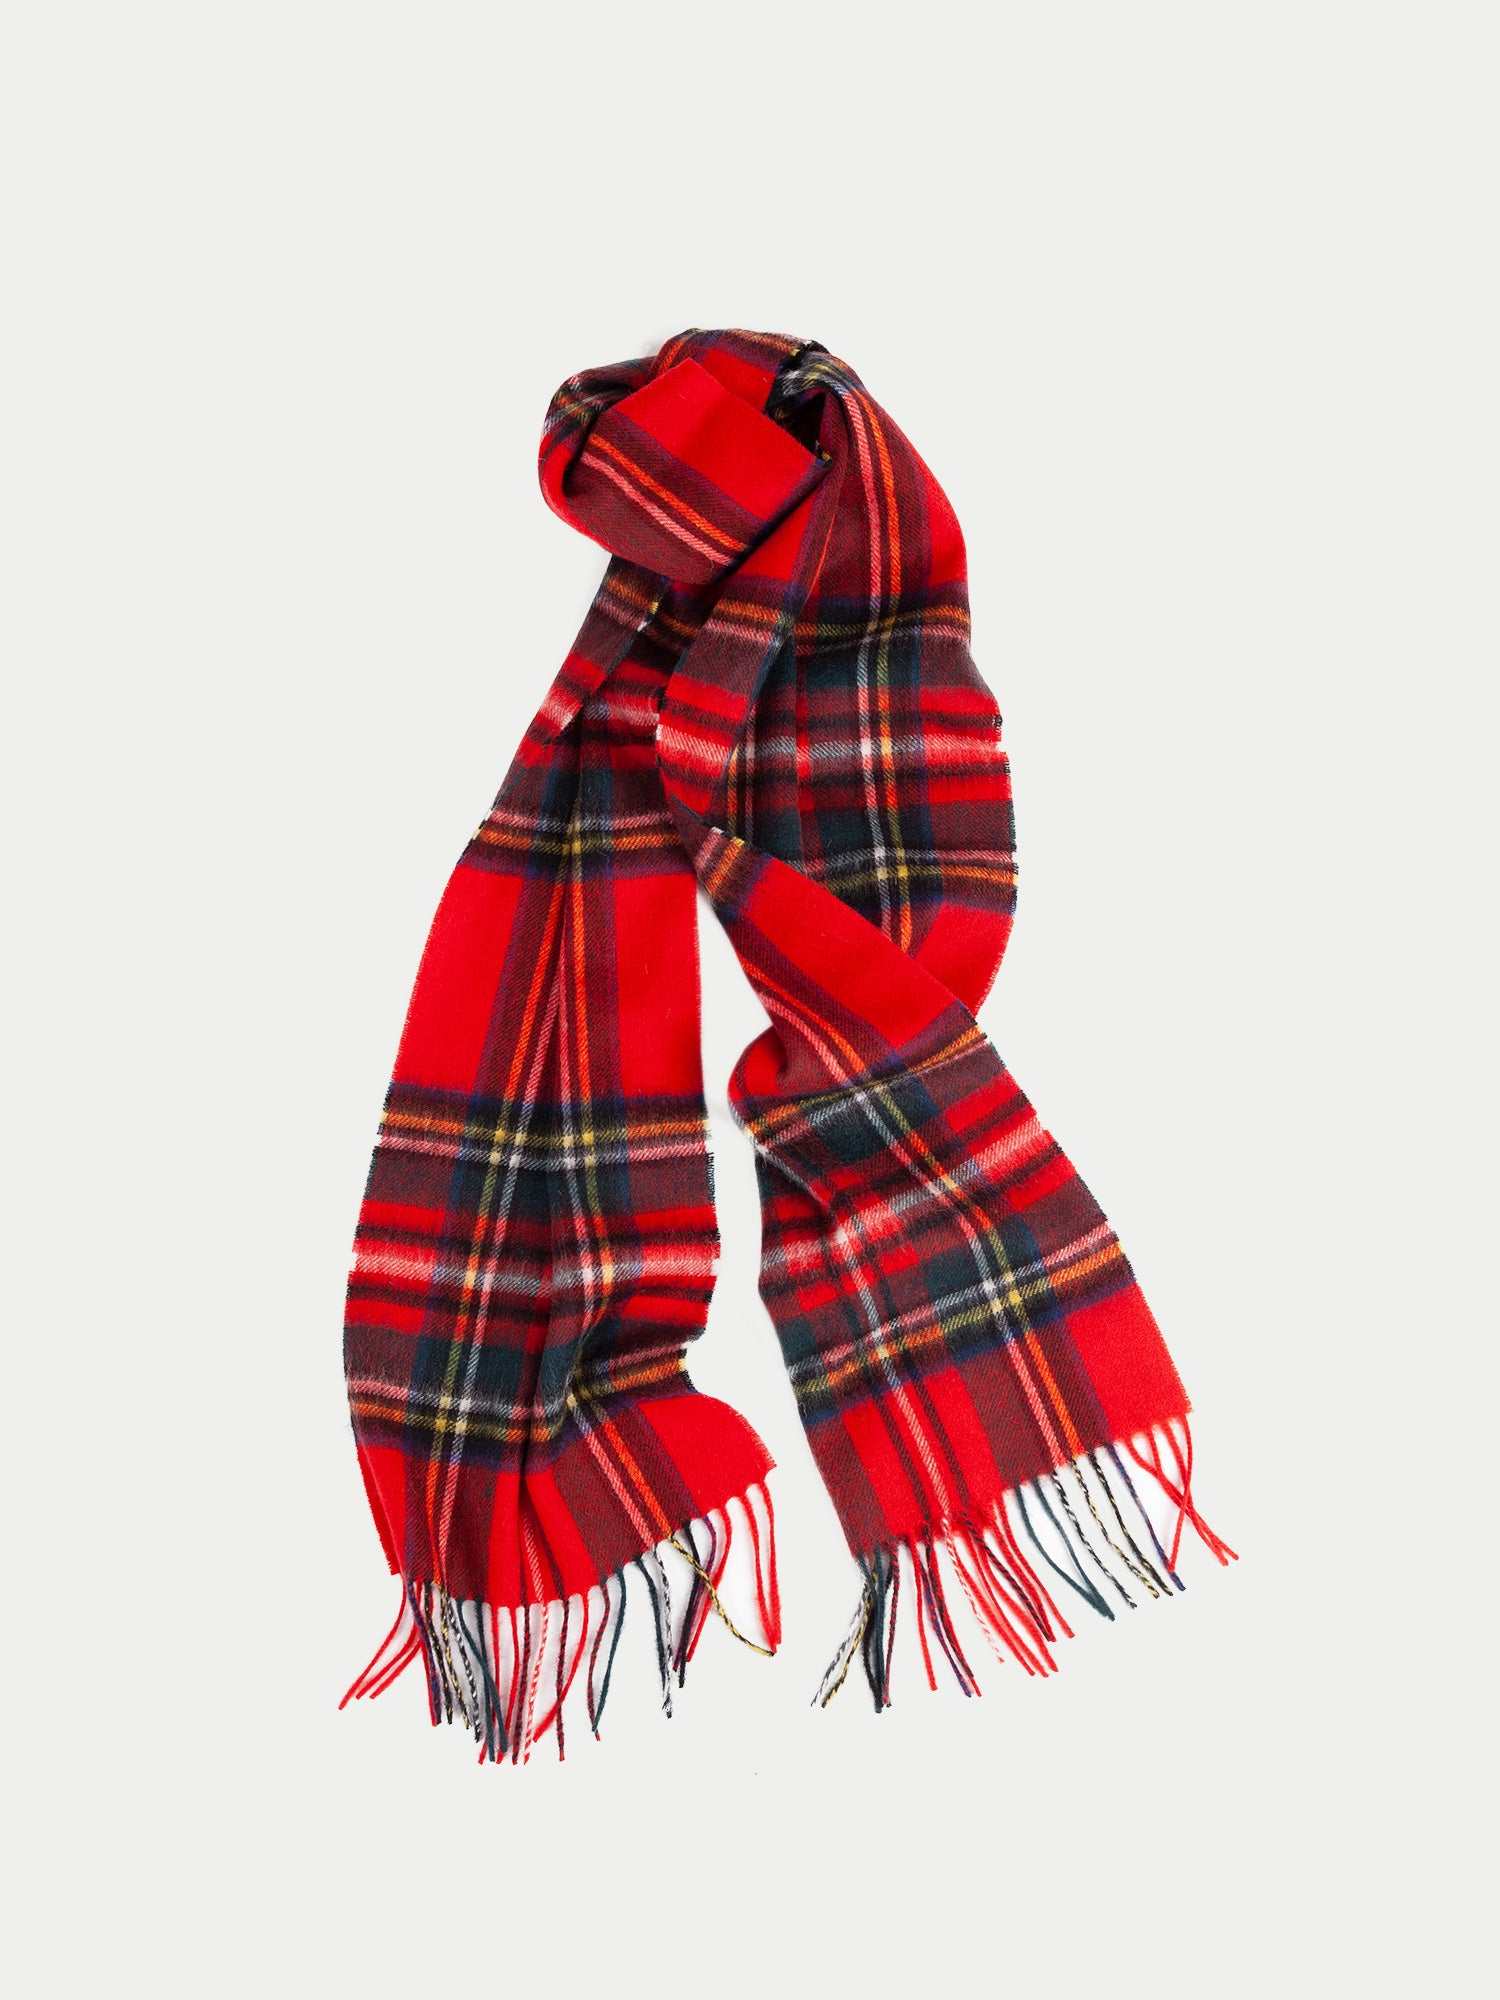 Barbour New Check Tartan Scarf (Royal) f1